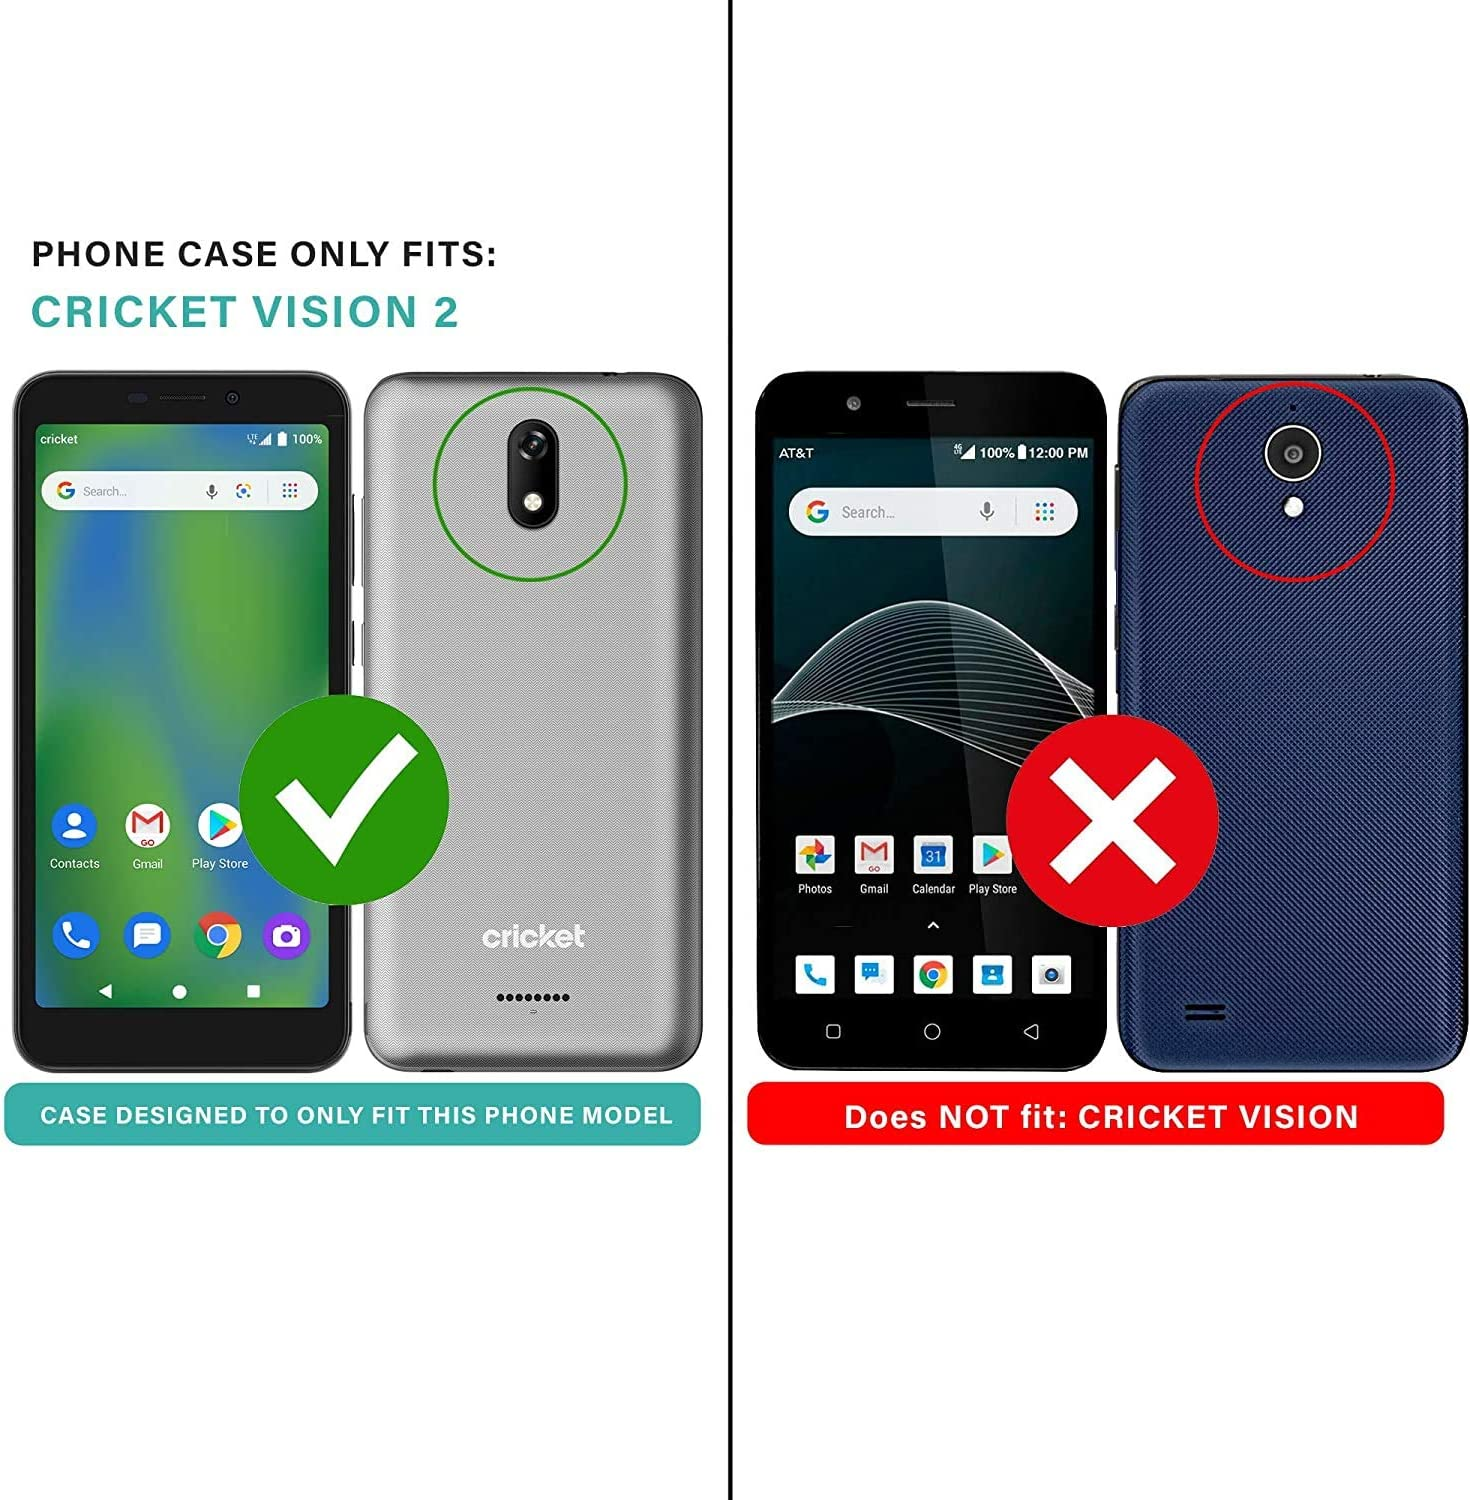 Shockproof Impact Resist Durable Phone Case -Rose Gold E-Began Case for Cricket Vision 2 Full-Body Protective Matte Bumper with Built-in Screen Protector U304AC, 2020 Release Glitter Shiny